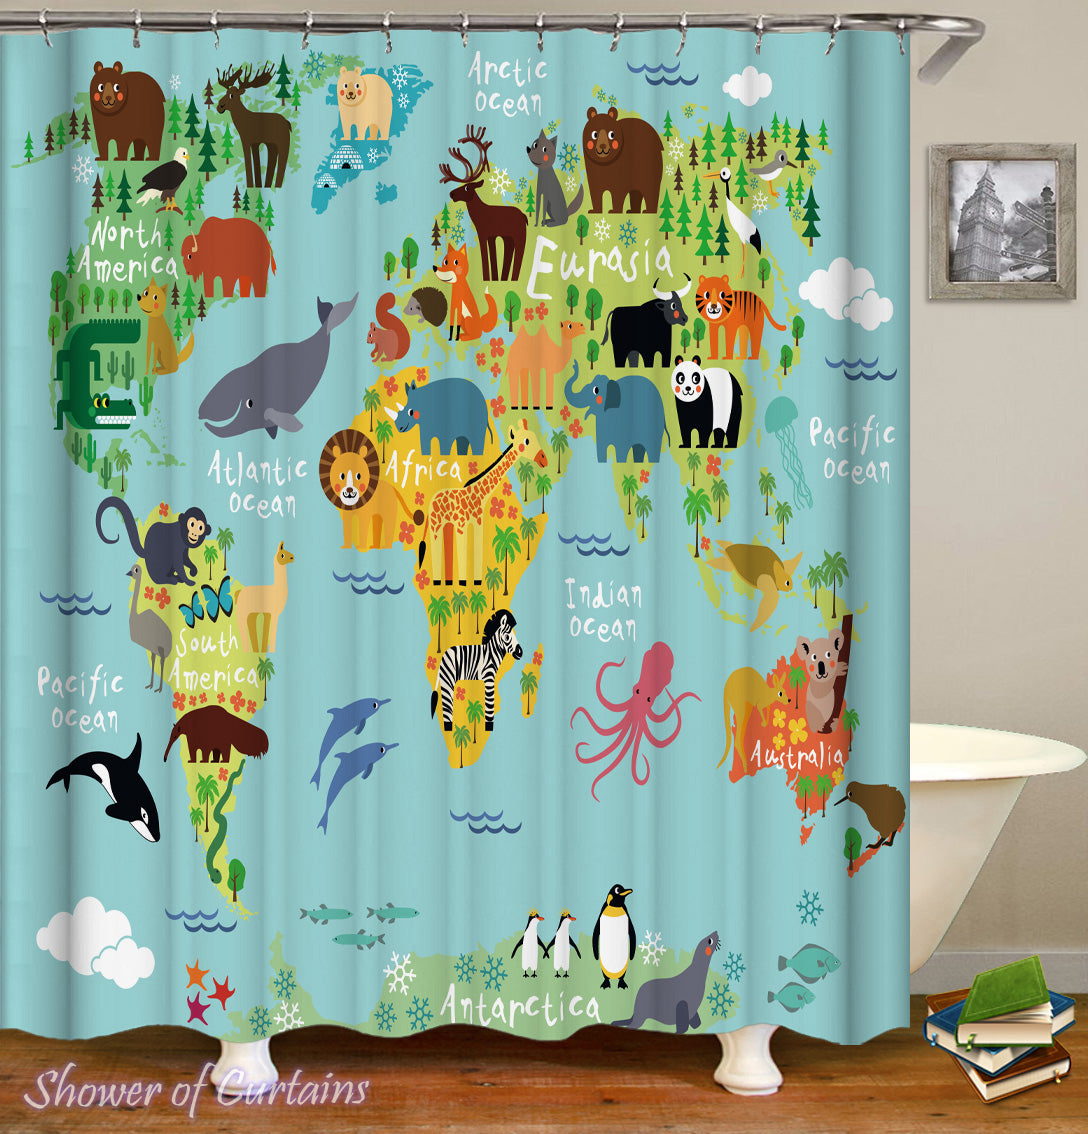 Shower Curtains Cartoon Animals Introduce World Map Shower of